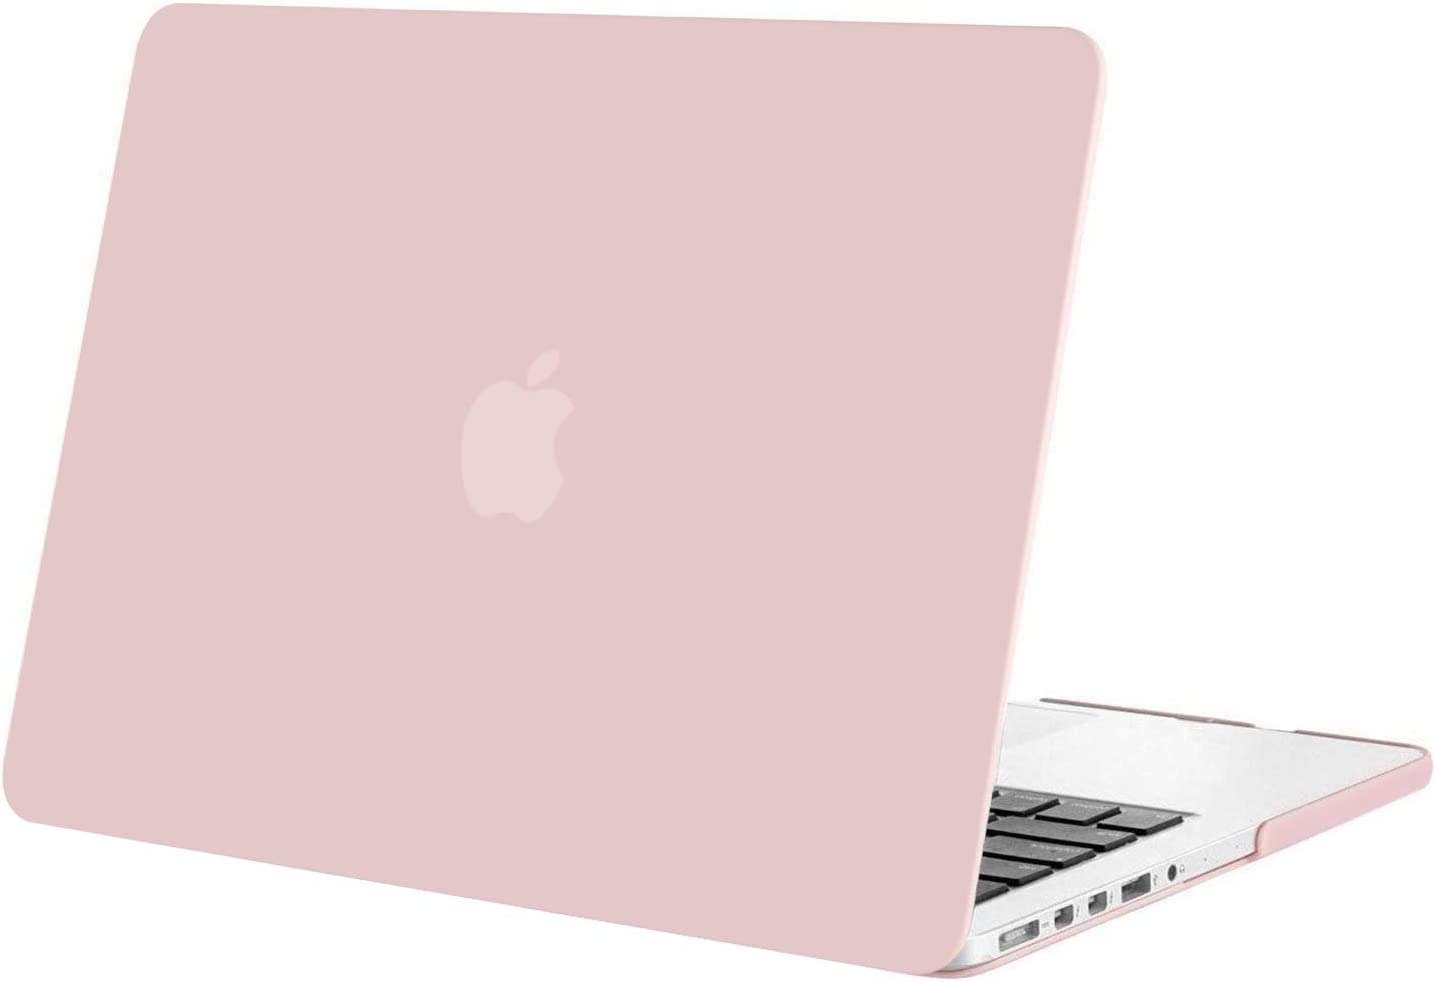 MOSISO Plastic Hard Shell Case Cover Only Compatible with Older Version MacBook Pro Retina 13 Inch (Models: A1502 & A1425) (Release 2015 - end 2012), Rose Quartz